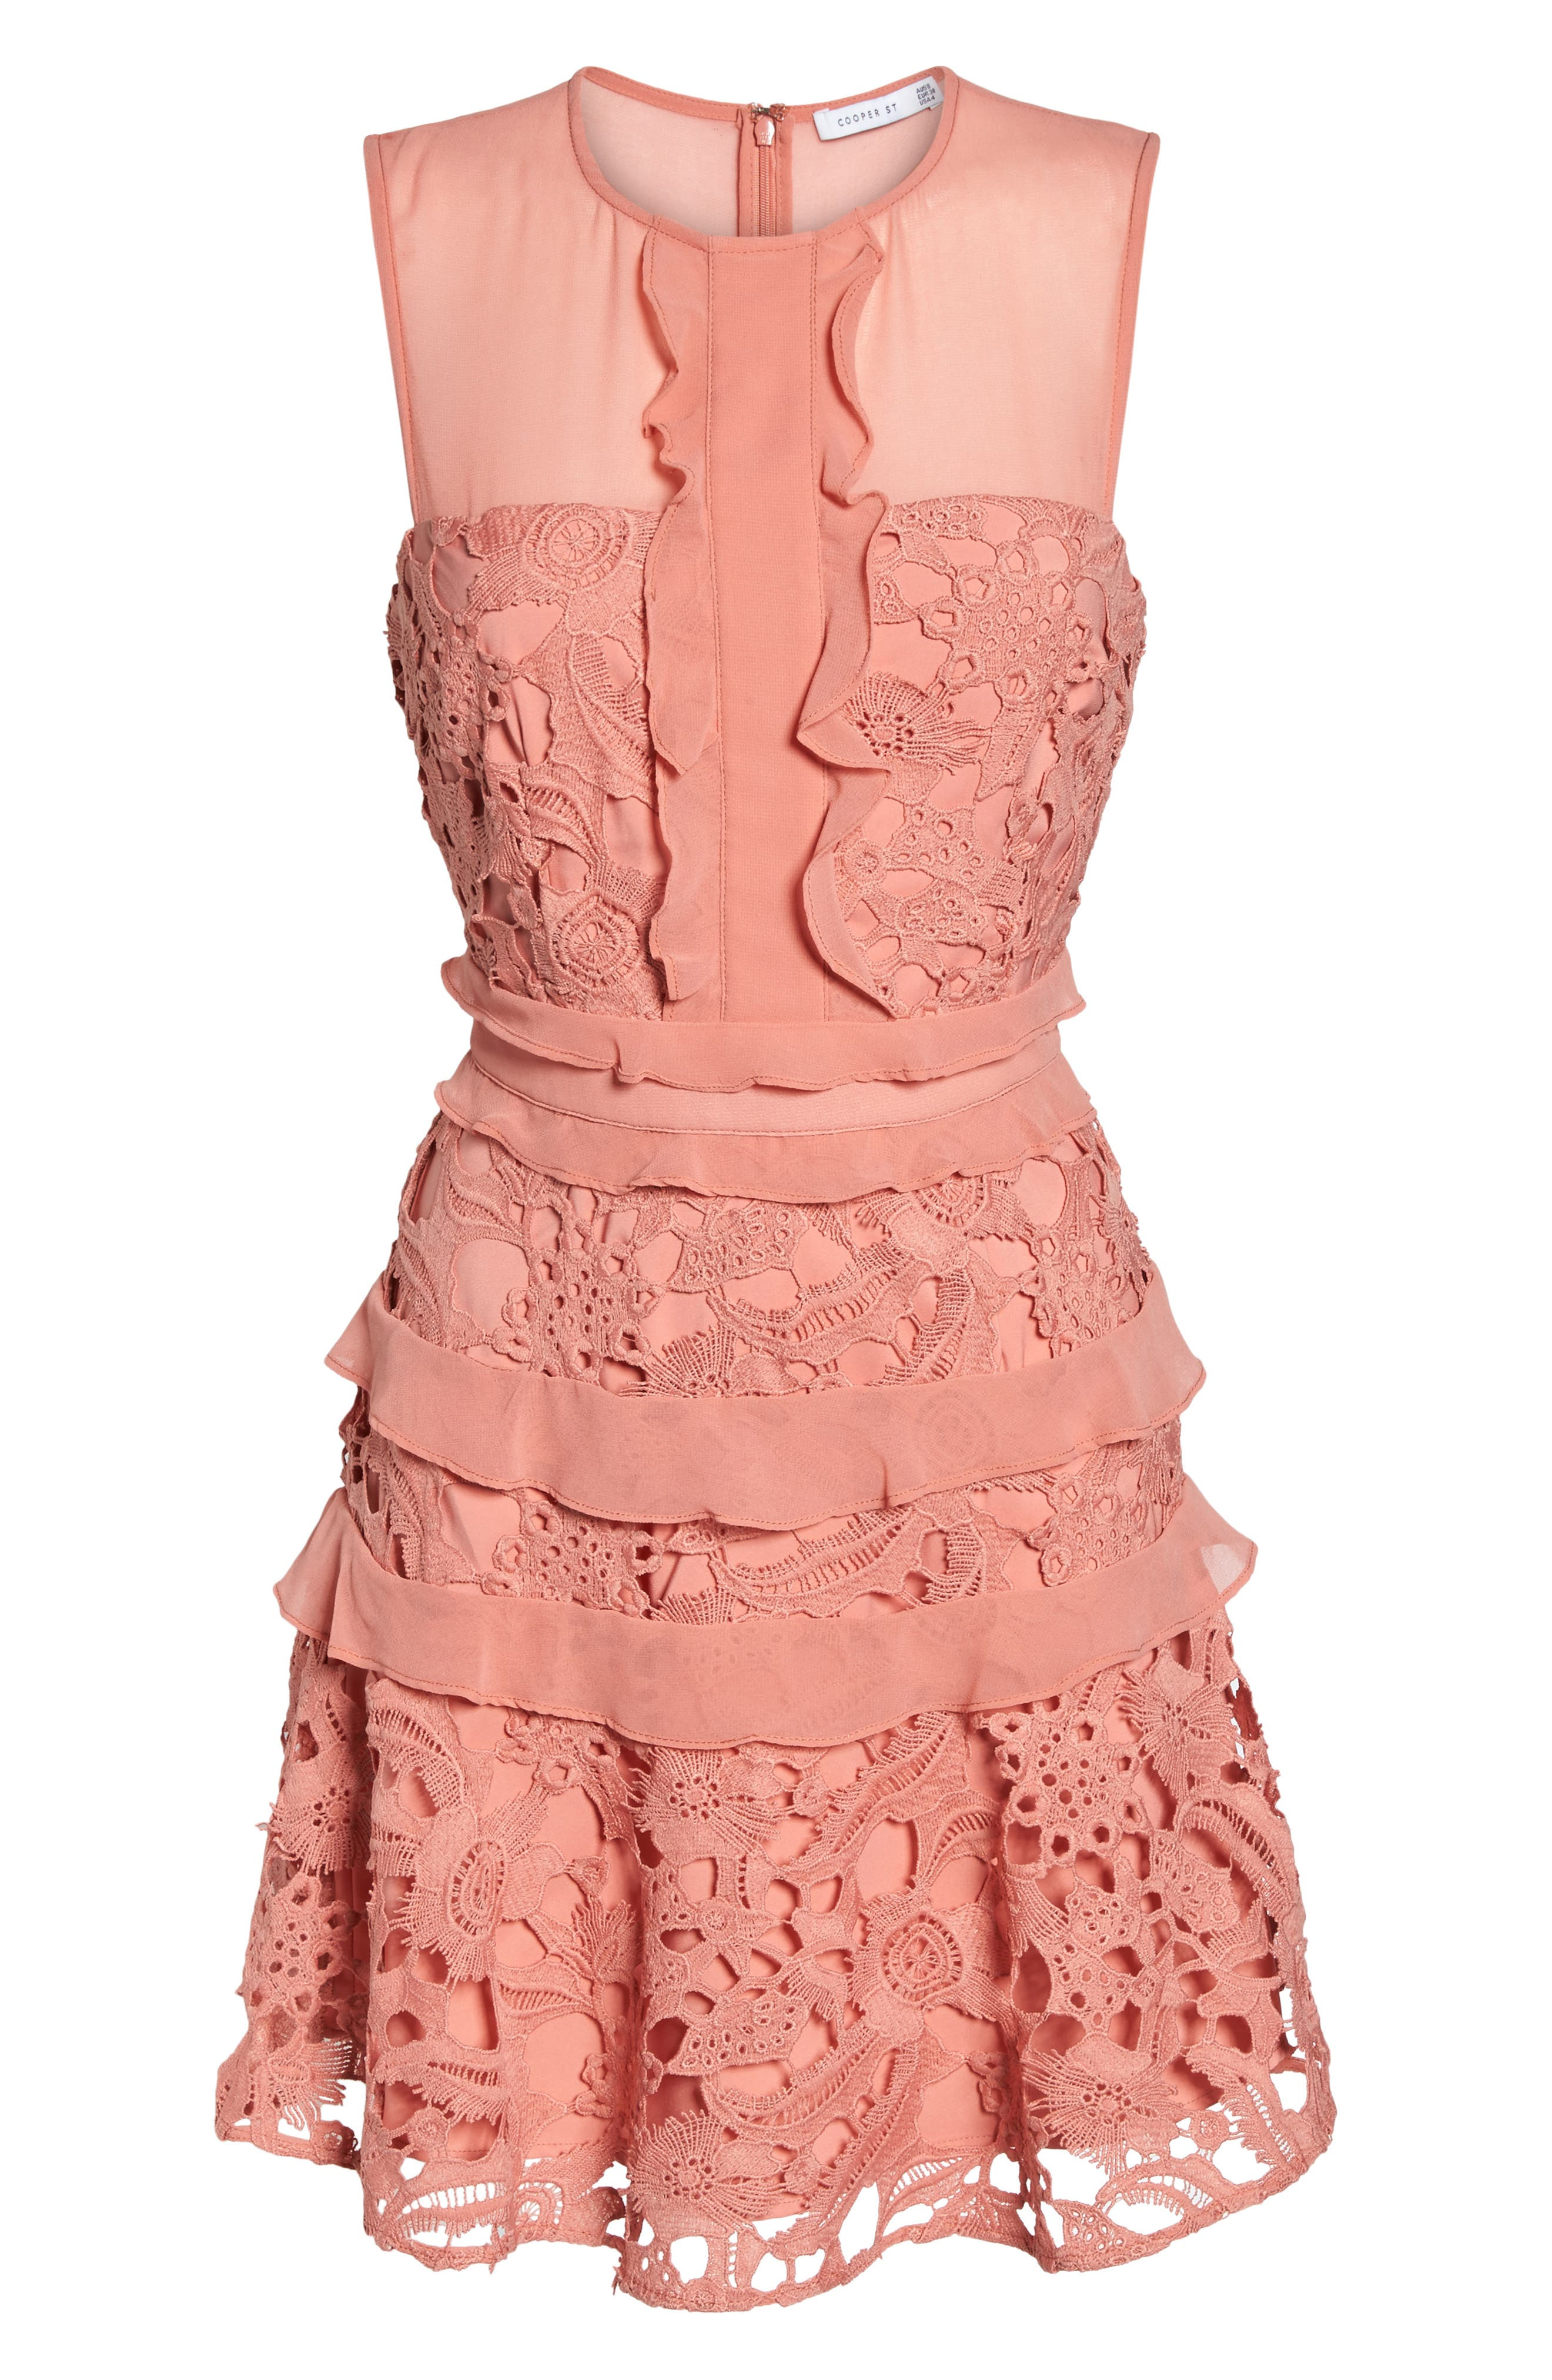 Lace Parfait Minidress,                             Alternate thumbnail 6, color,                             Dusty Rose